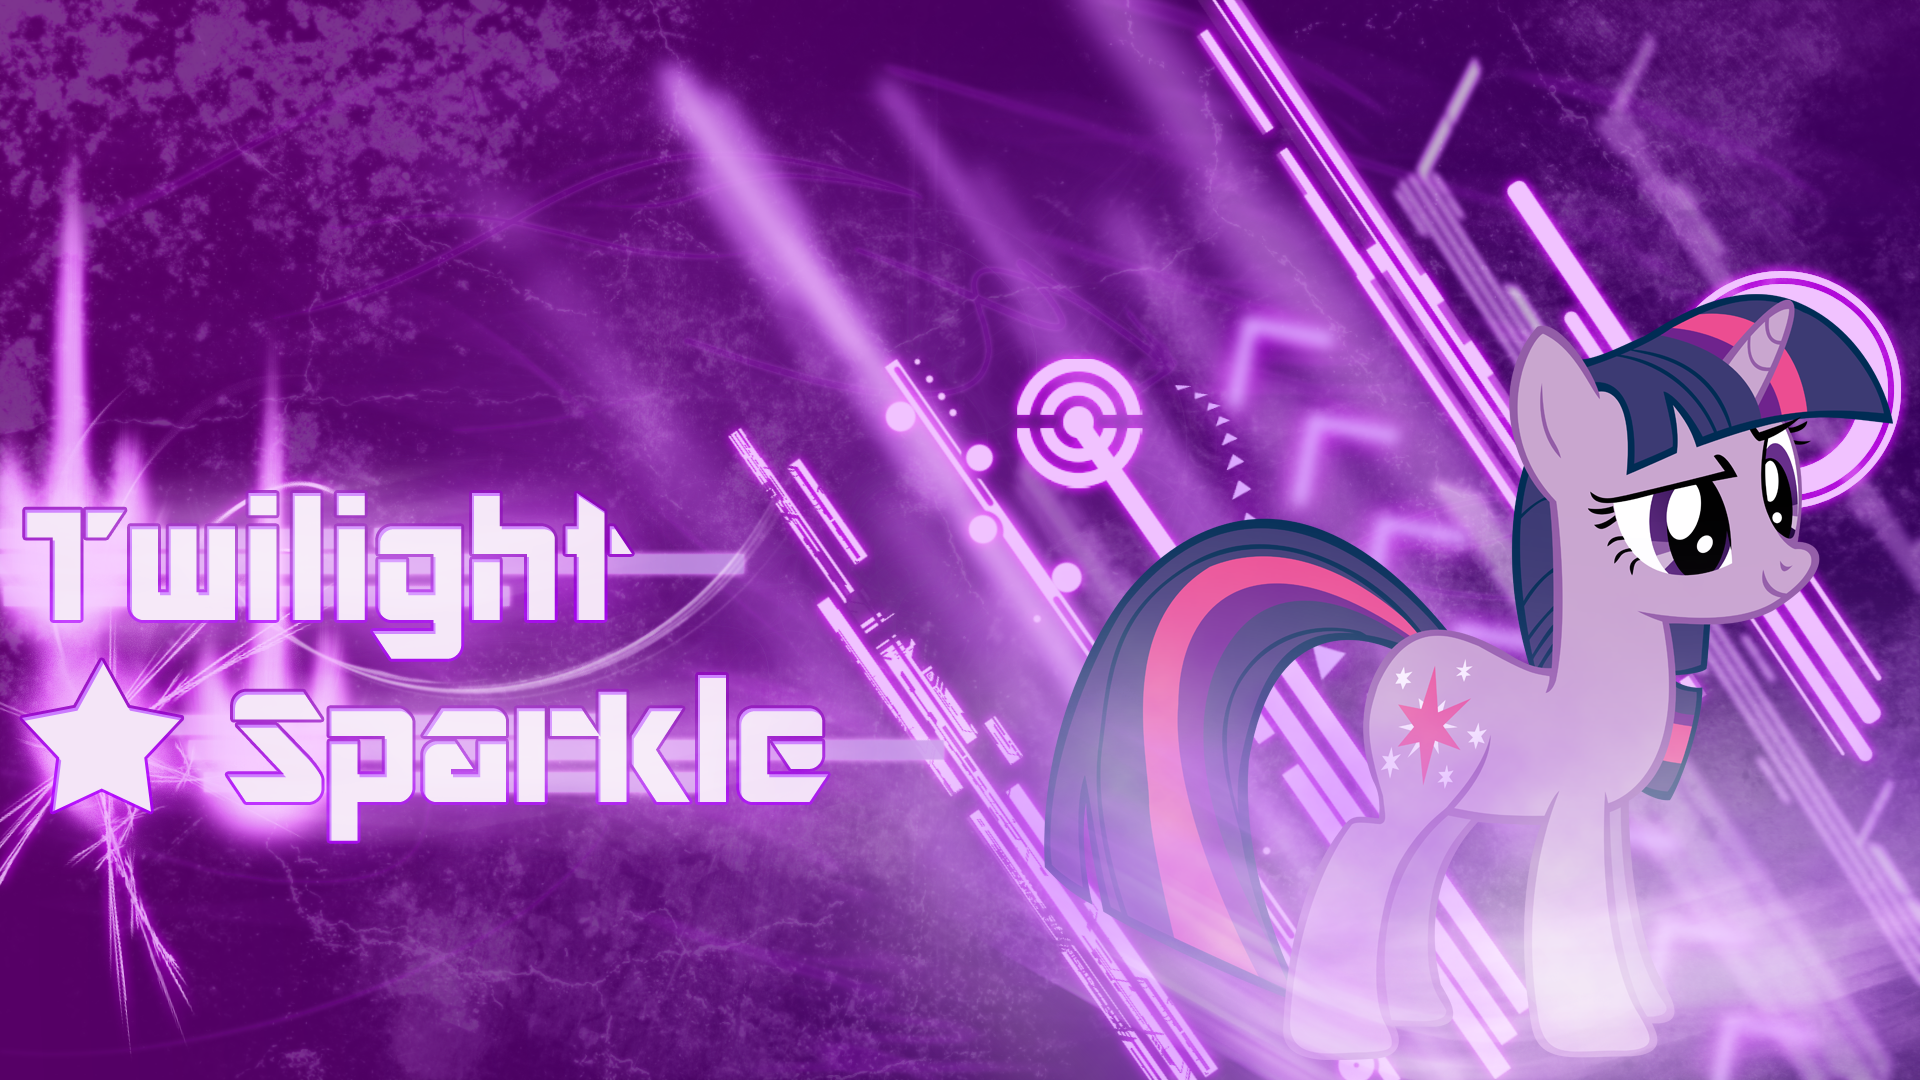 Twilight Sparkle Wallpaper 3 by piranhaplant1